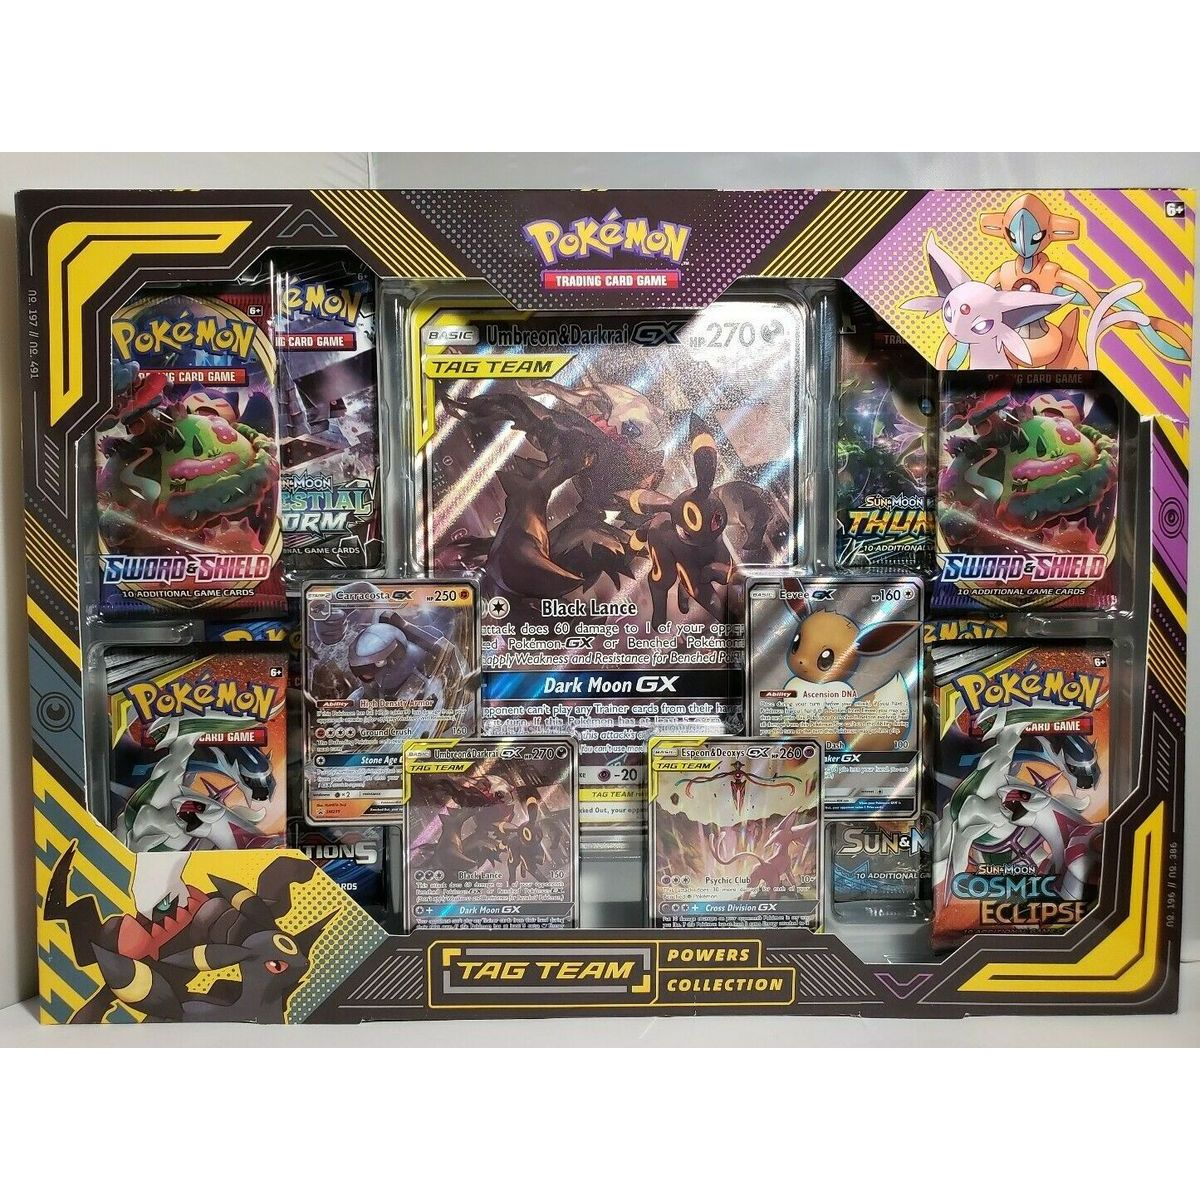 Pokémon TCG  TAG TEAM Powers Collection Black Lance